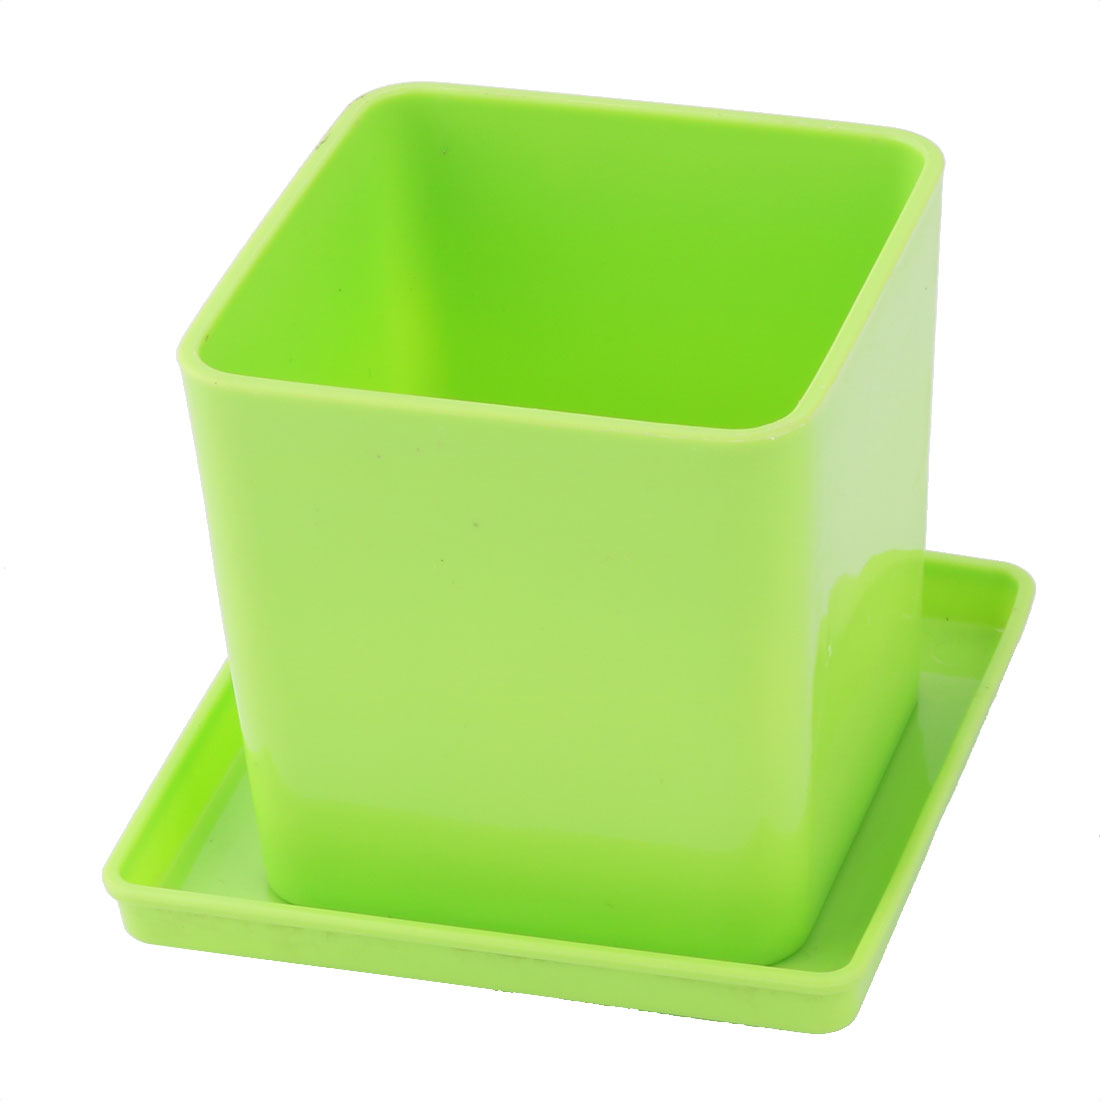 Home Garden Plastic Square Rose Plant Flower Pot Tray Holder Green 2.8 Inch Height